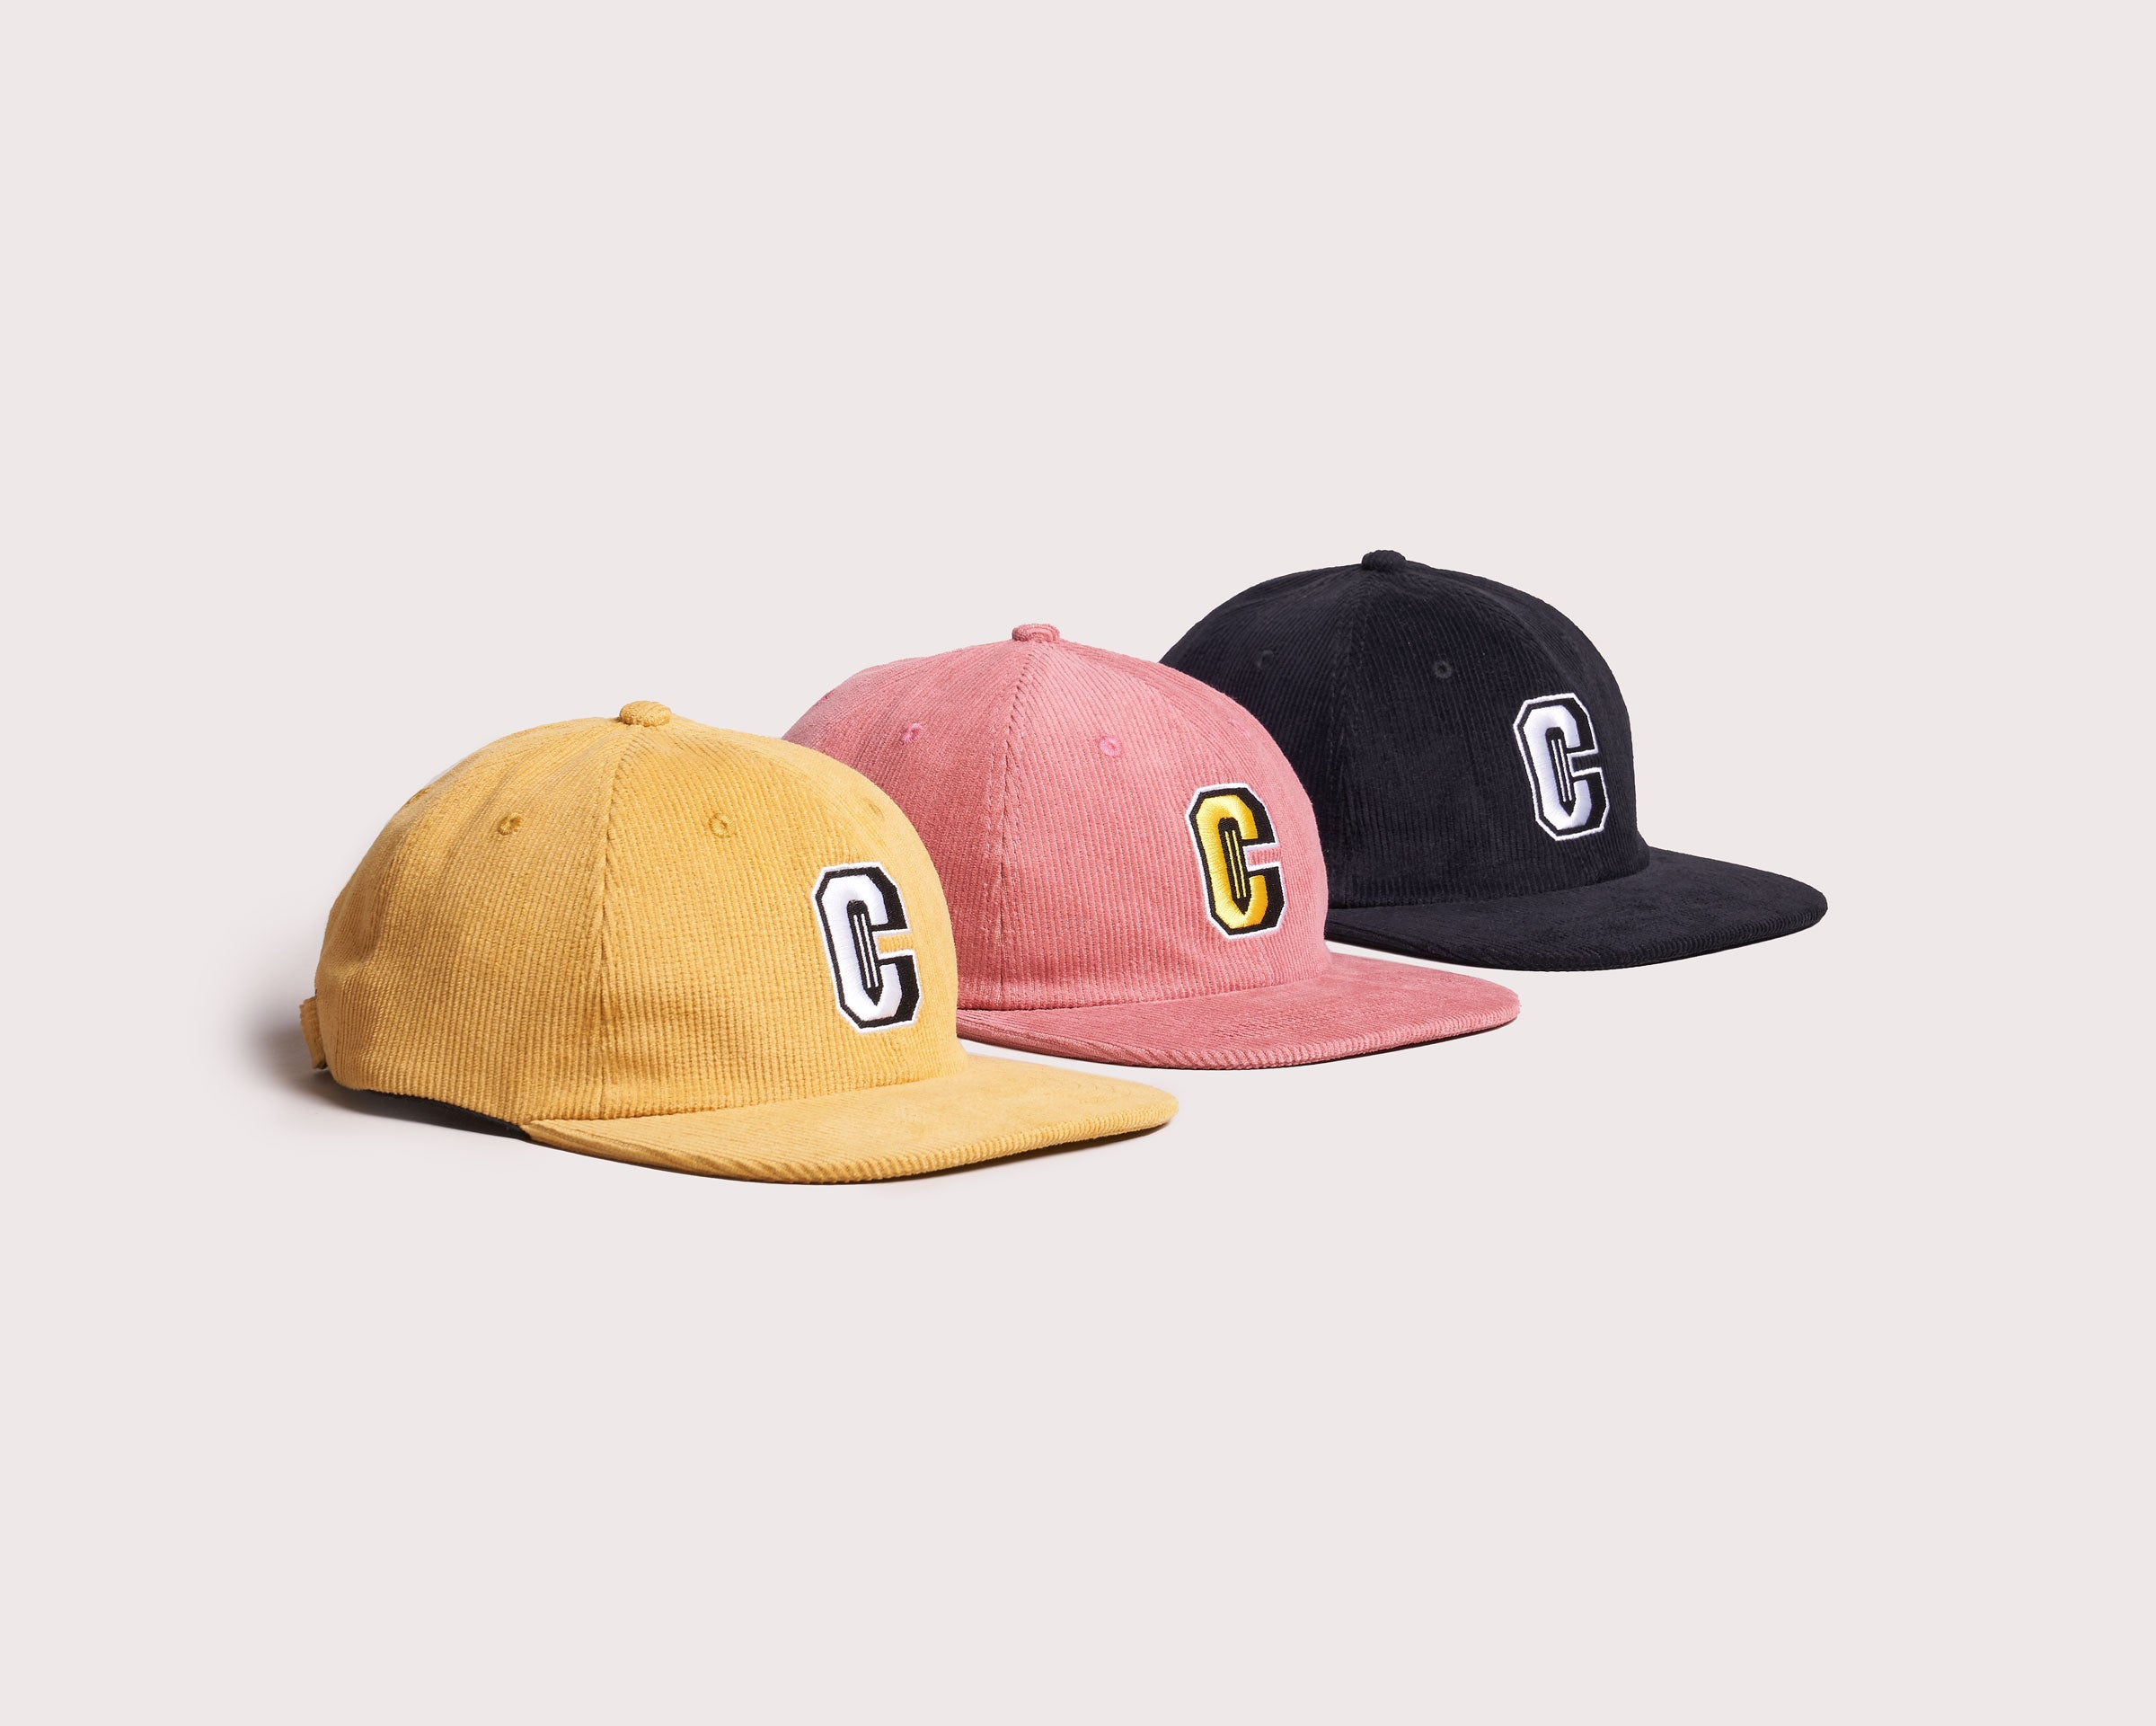 Three caps lined up together from a side view